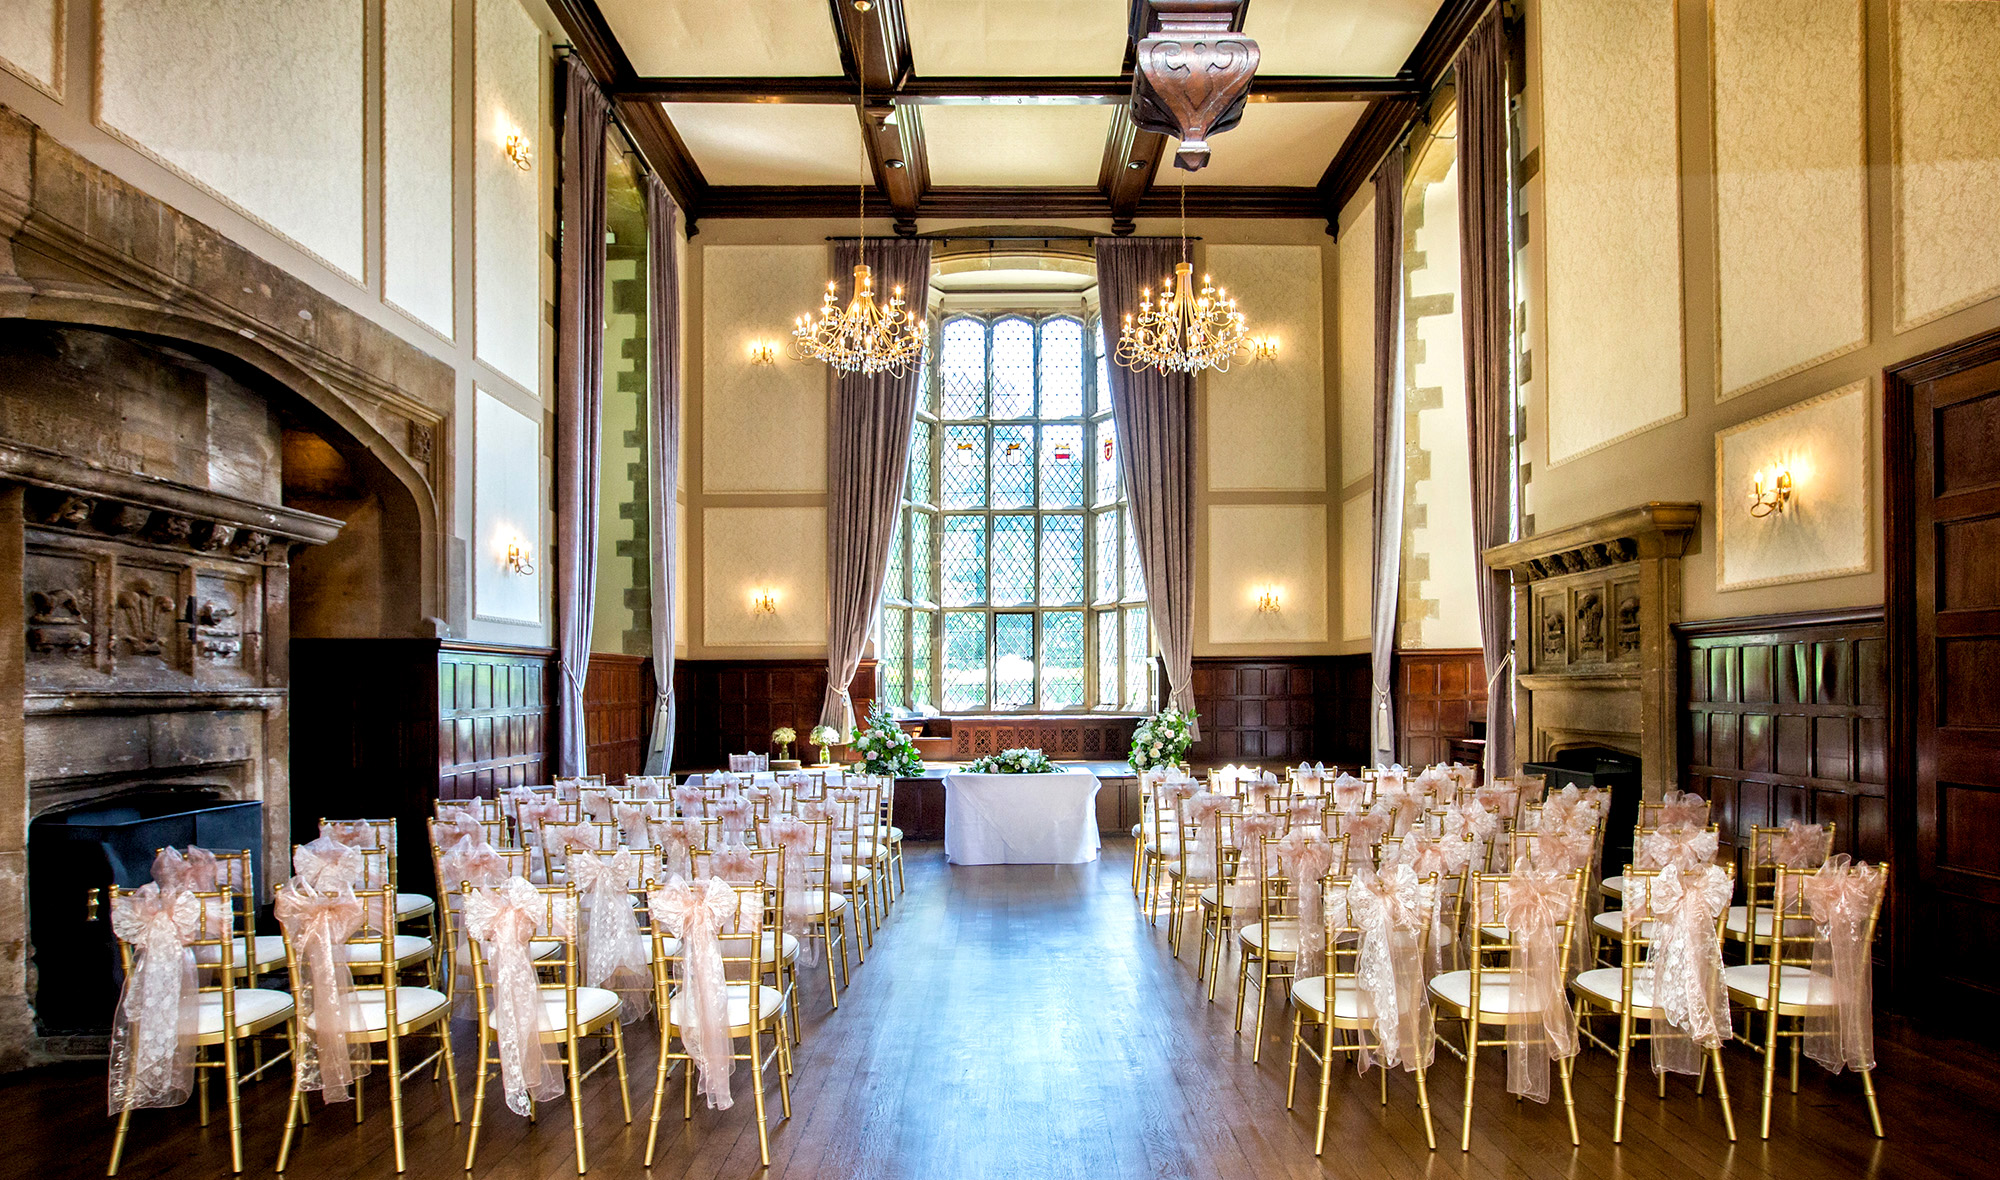 Hotel Spends £100k on Great Hall